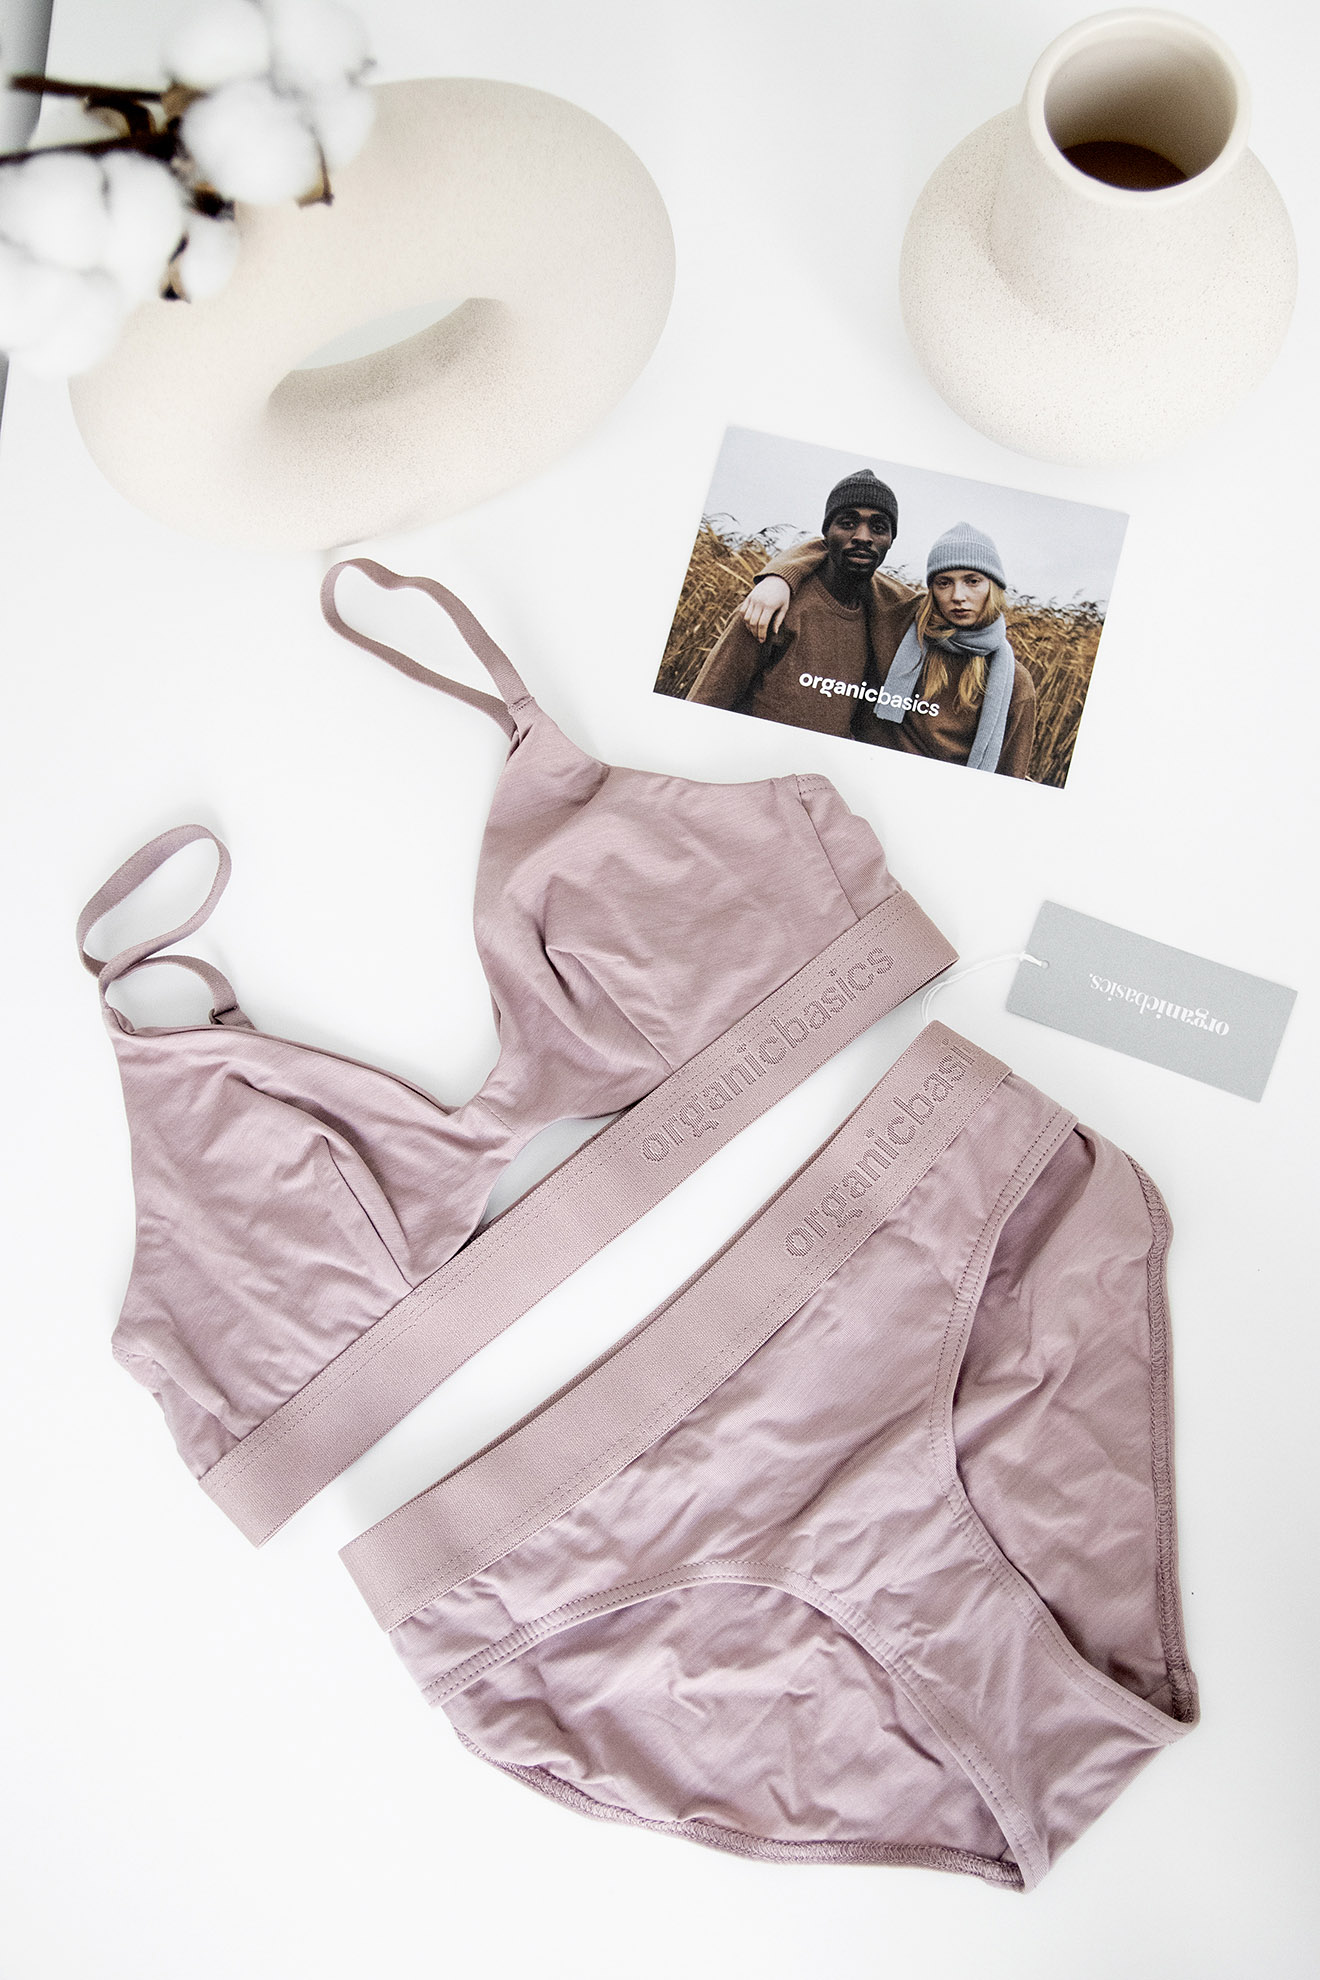 Organic Basics TENCEL Ethical Sustainable Briefs and Bra